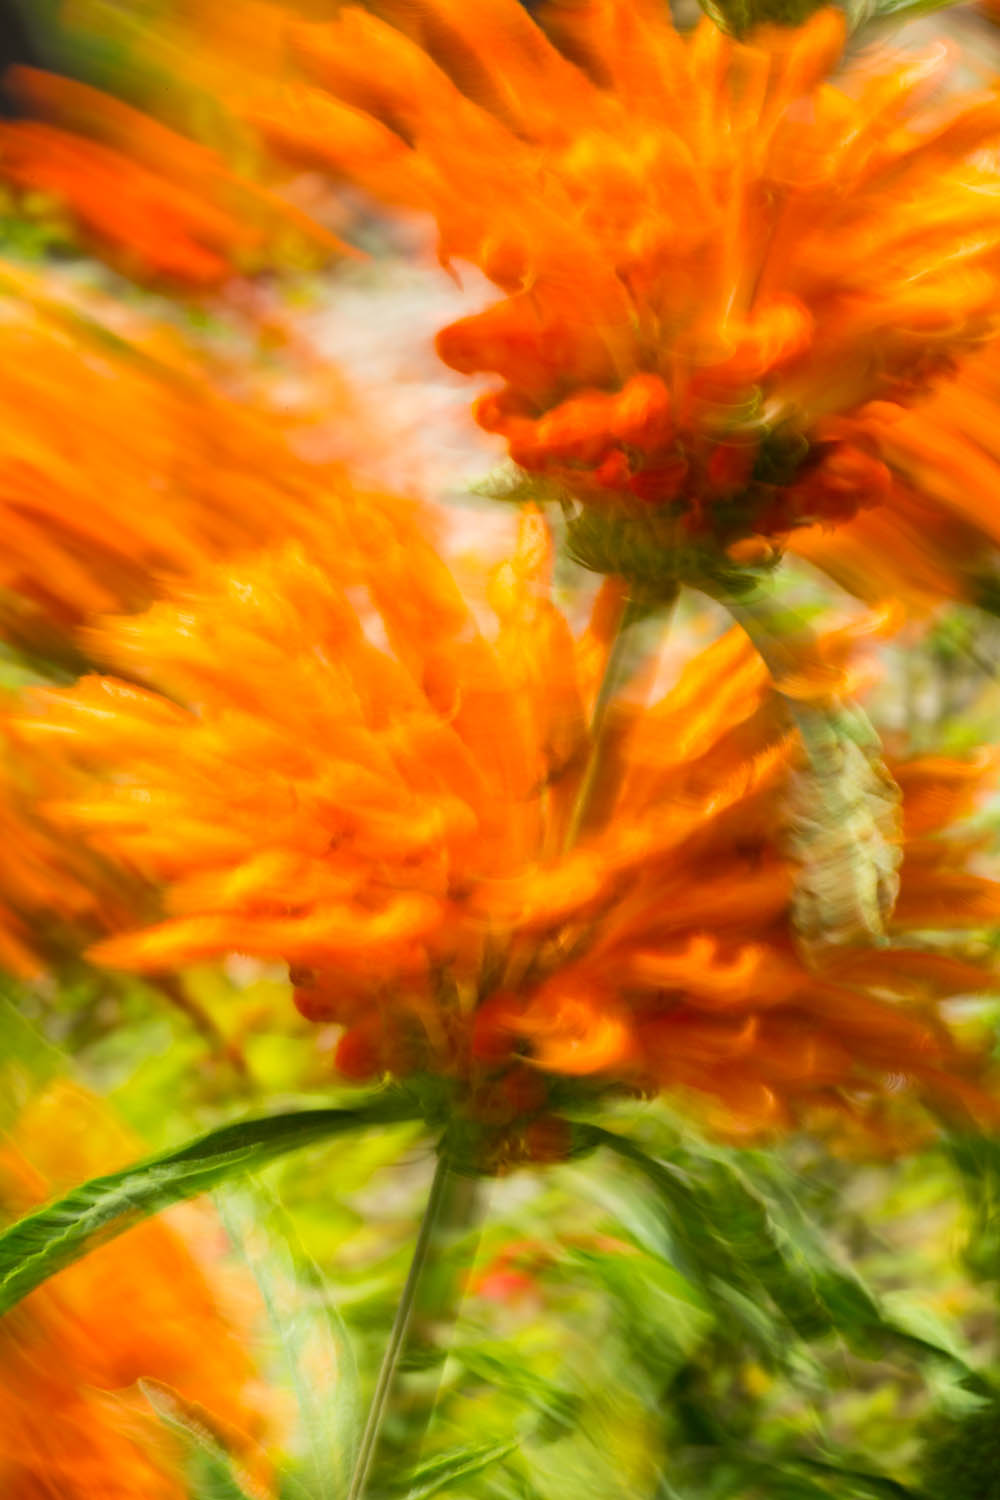 Flowers blowing in the breeze produce motion blur